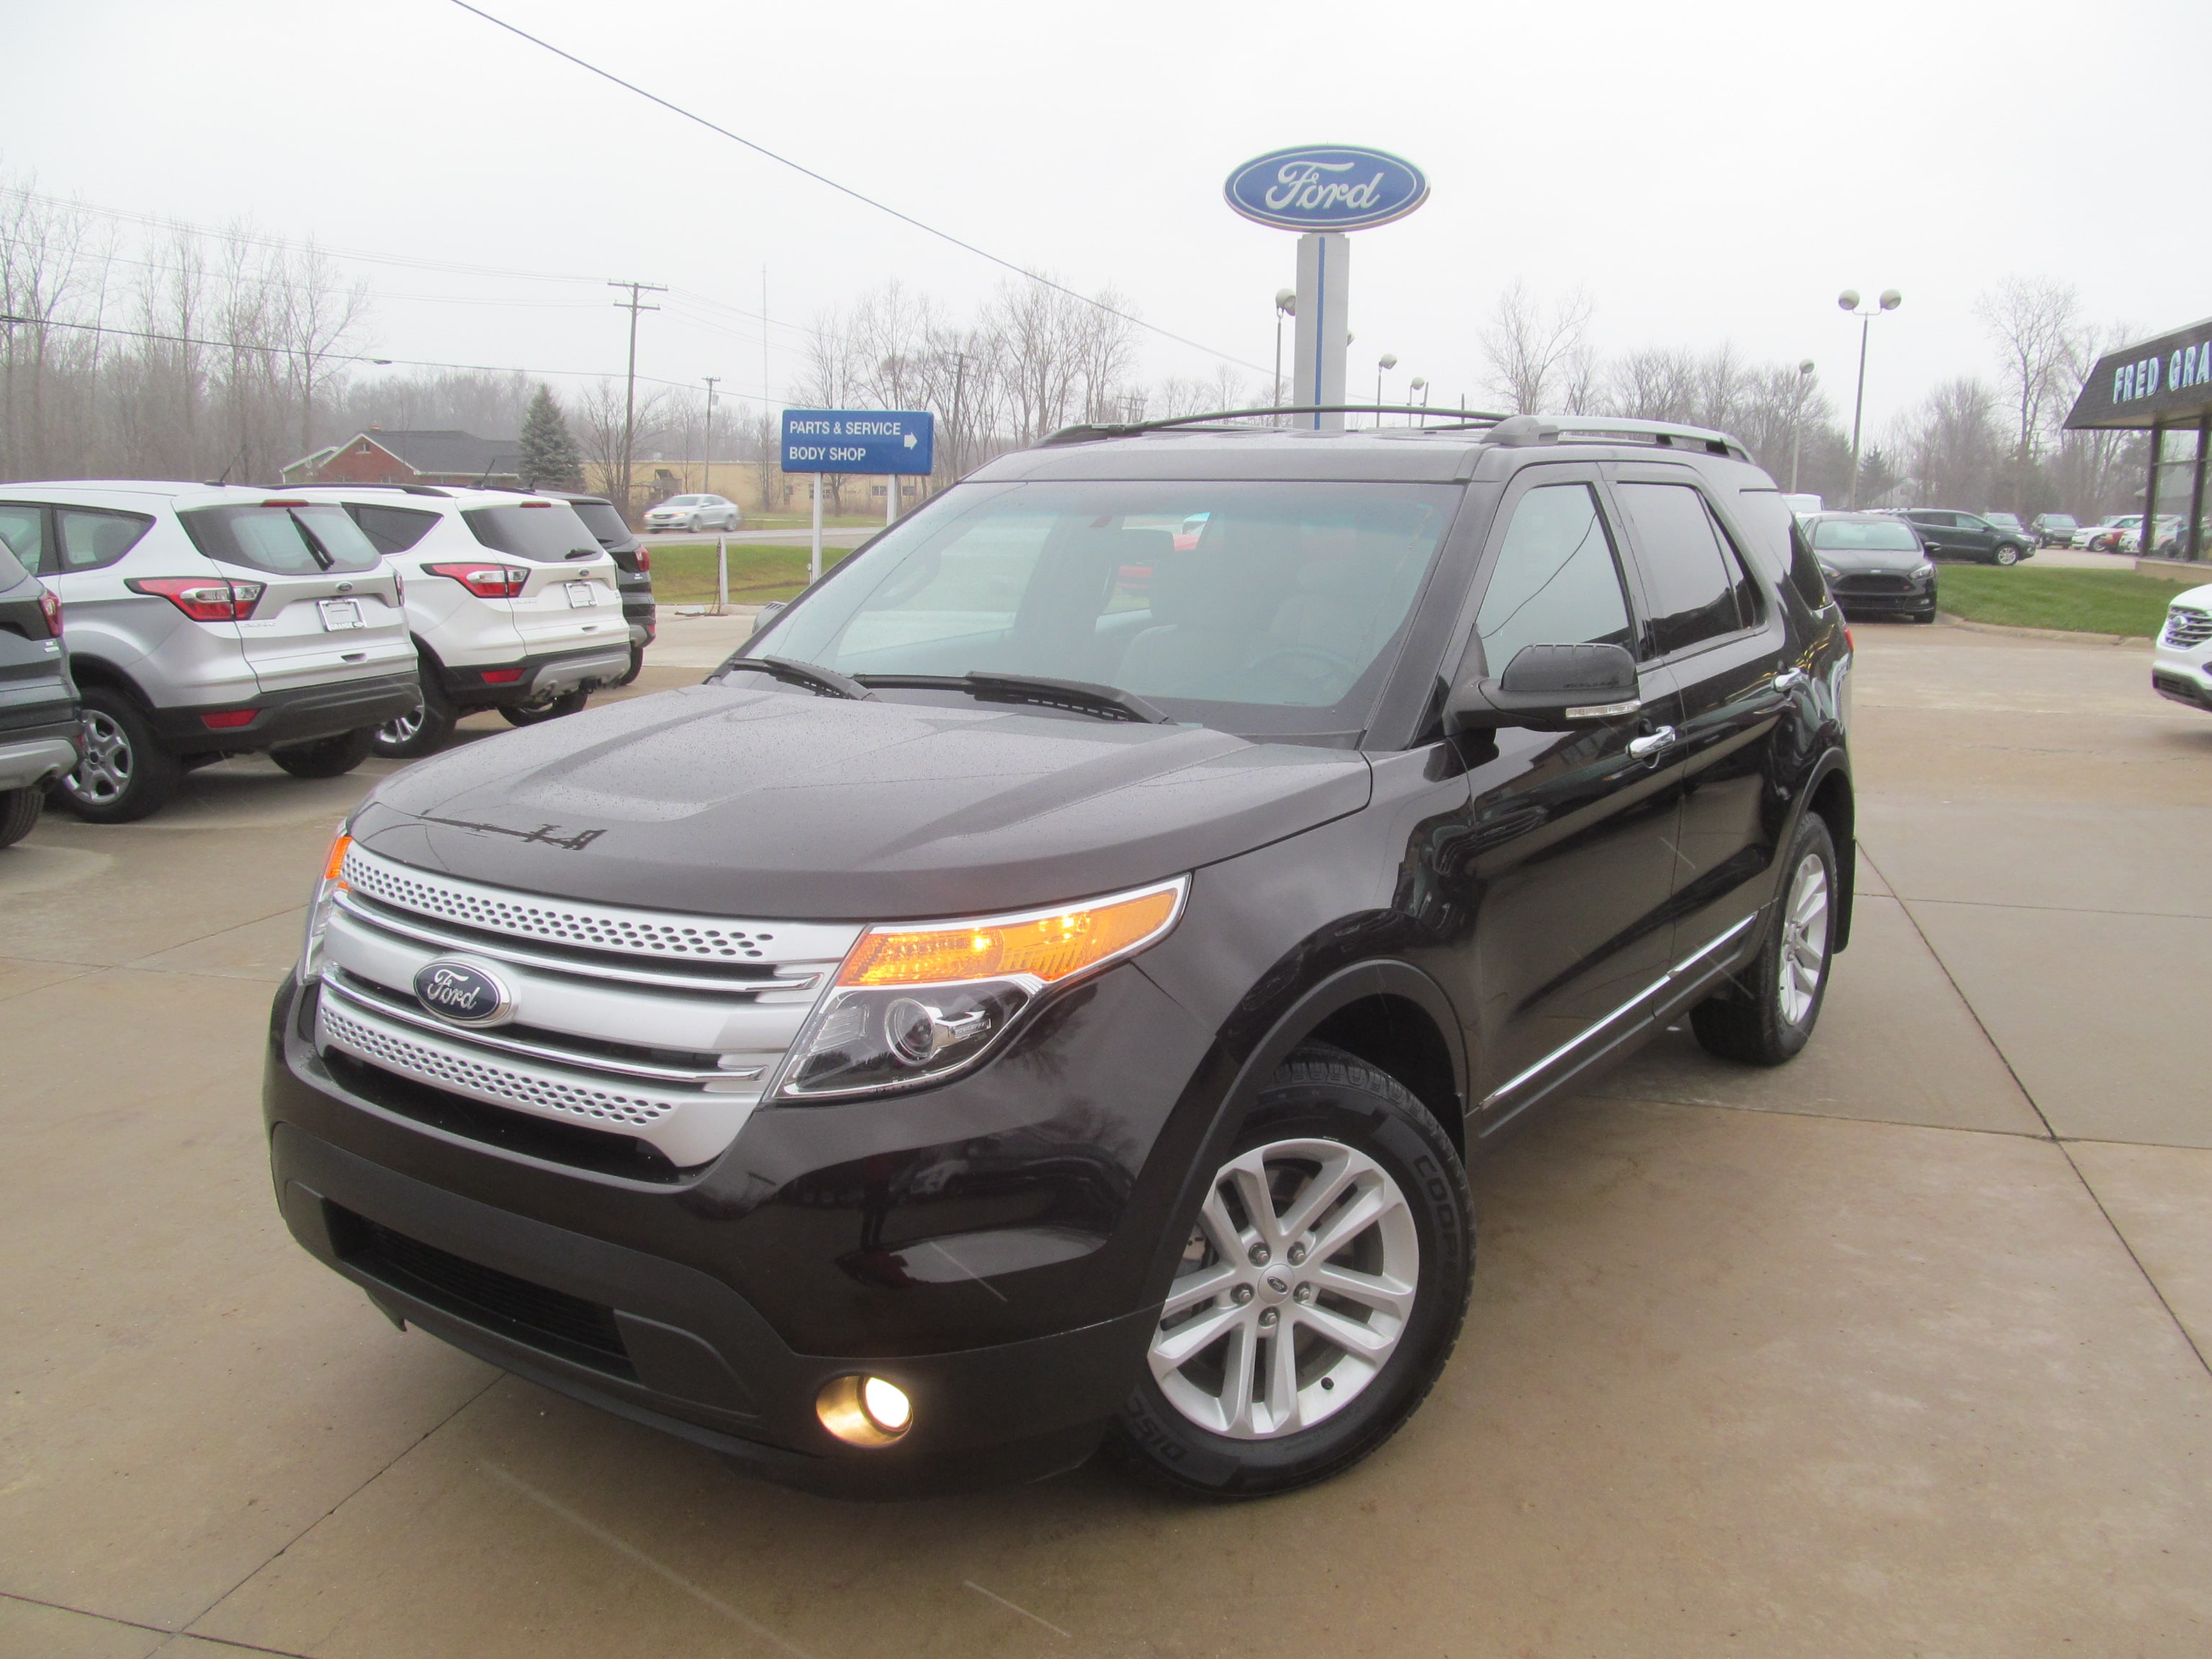 2014 Ford Explorer XLT-4WD Loaded MediumMiles SUV